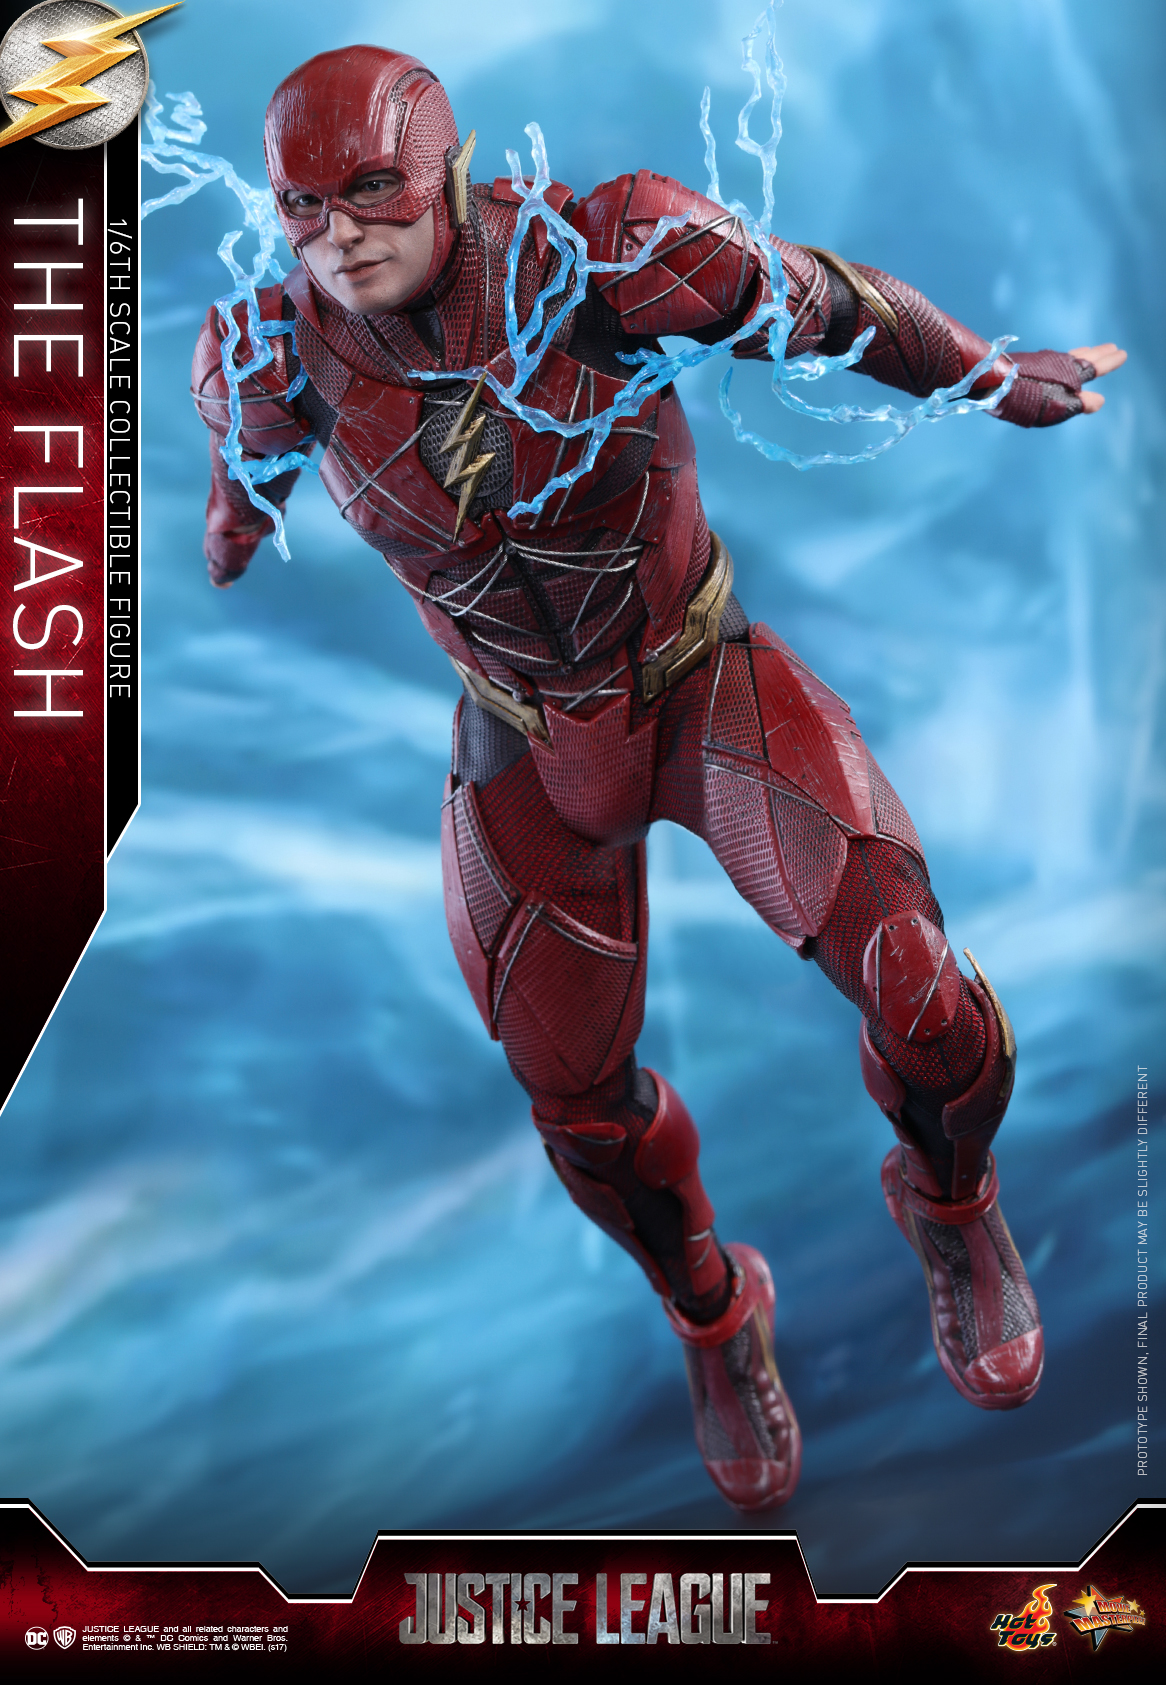 Hot Toys - Justice League - The Flash Collectible Figure_PR02.jpg